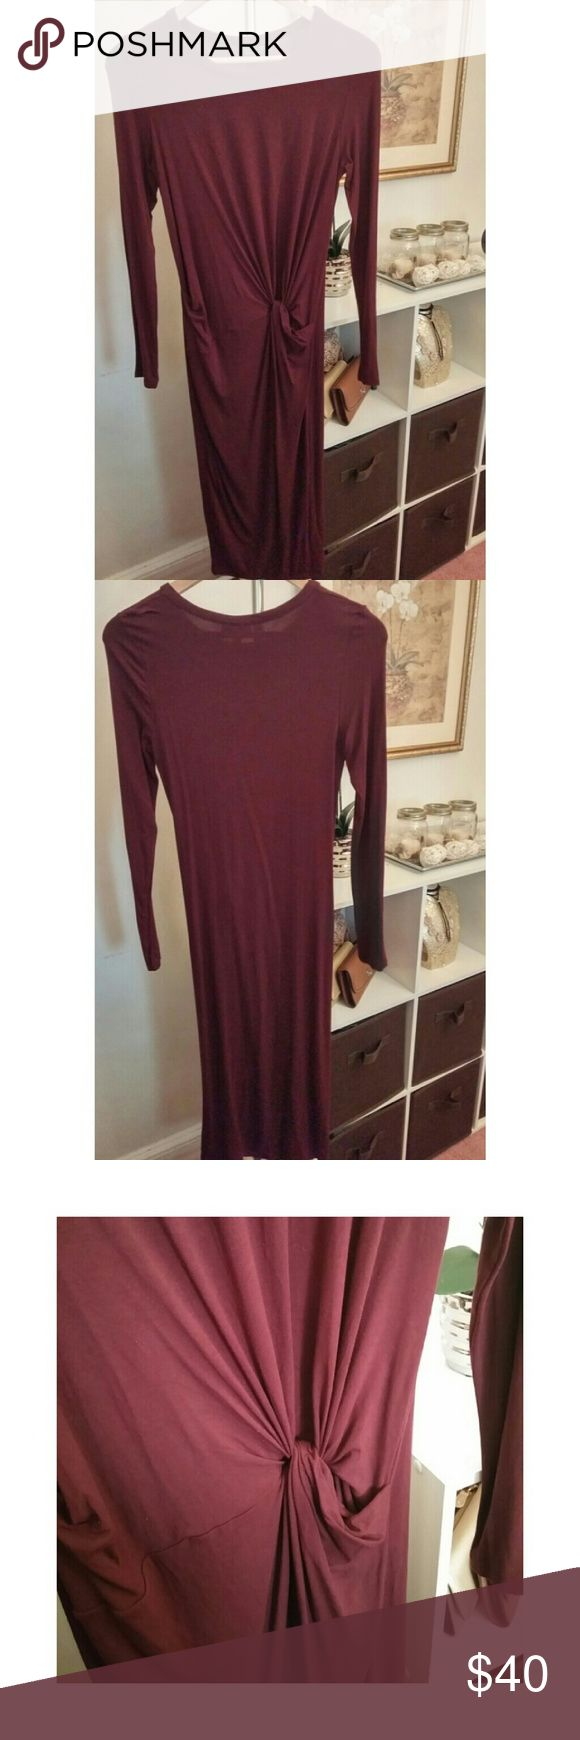 Topshop dress Burgundy longsleeve midi dress Knot draping at the side 94% Viscose 6% Elastane Topshop Dresses Long Sleeve